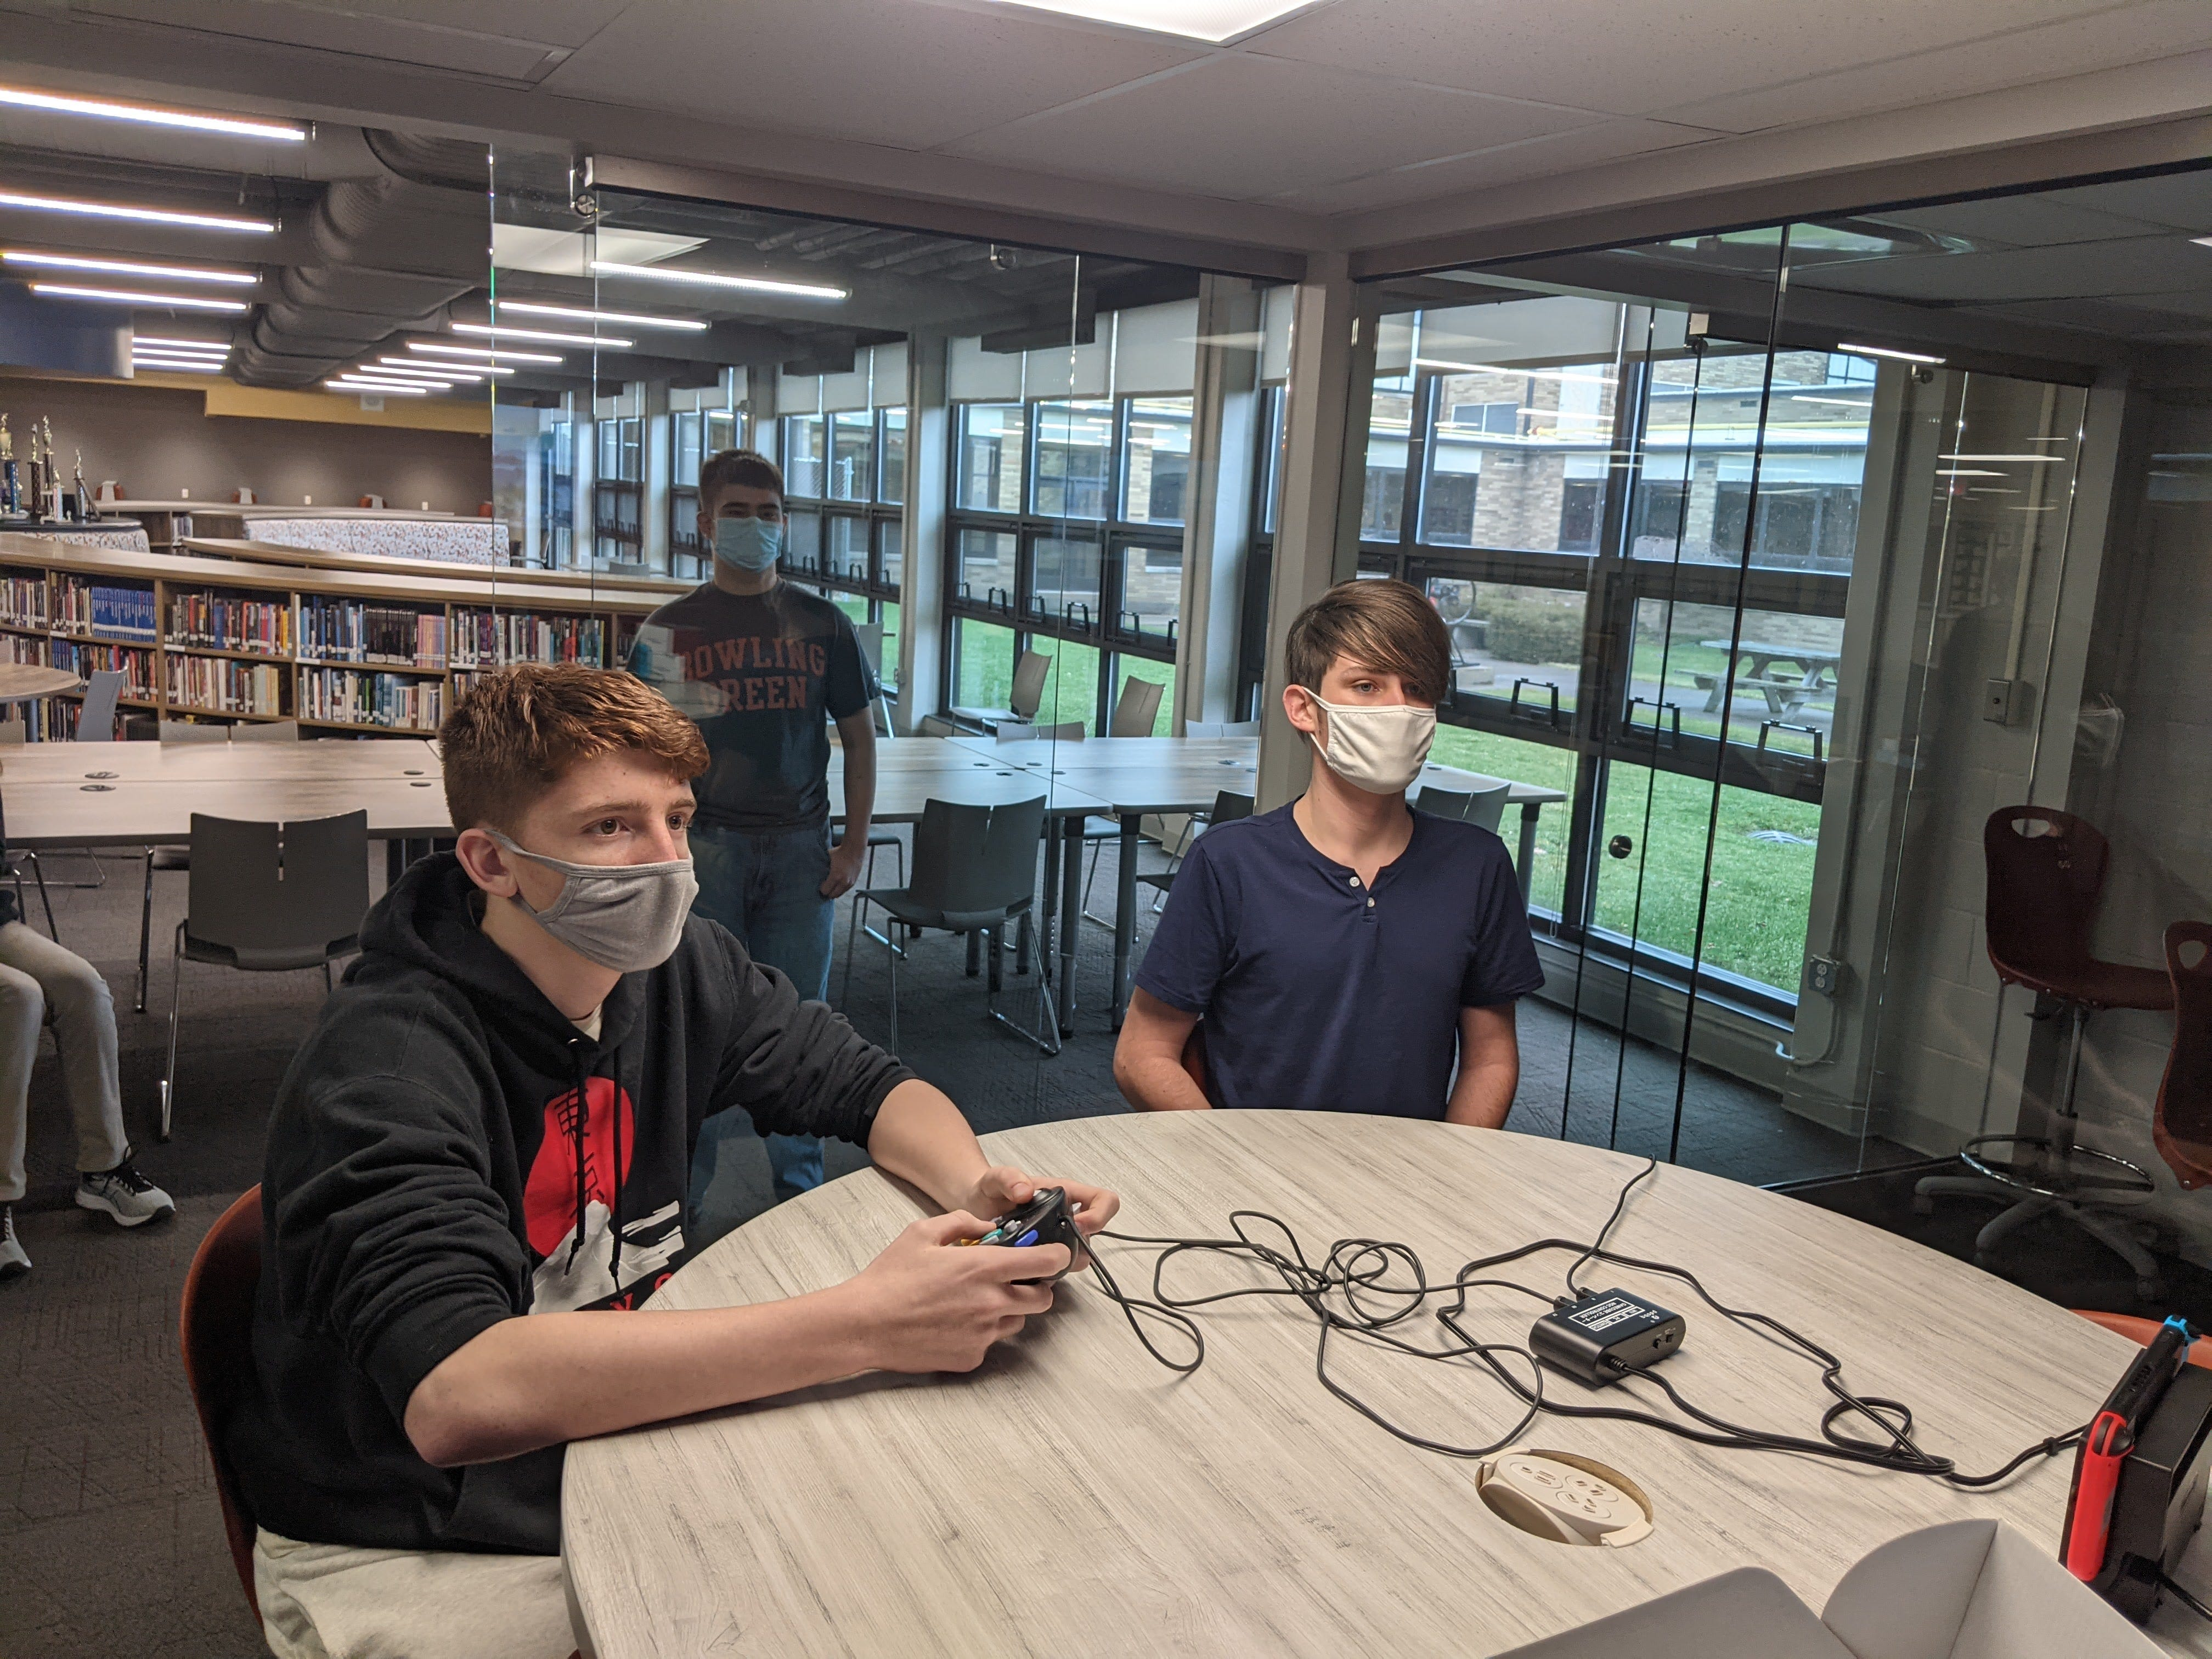 Port Clinton High School students Seth Haynes, Landon Staib, Captain, and Tyler Rodrigue-Hejhal participate in a practice session for the new esports club.